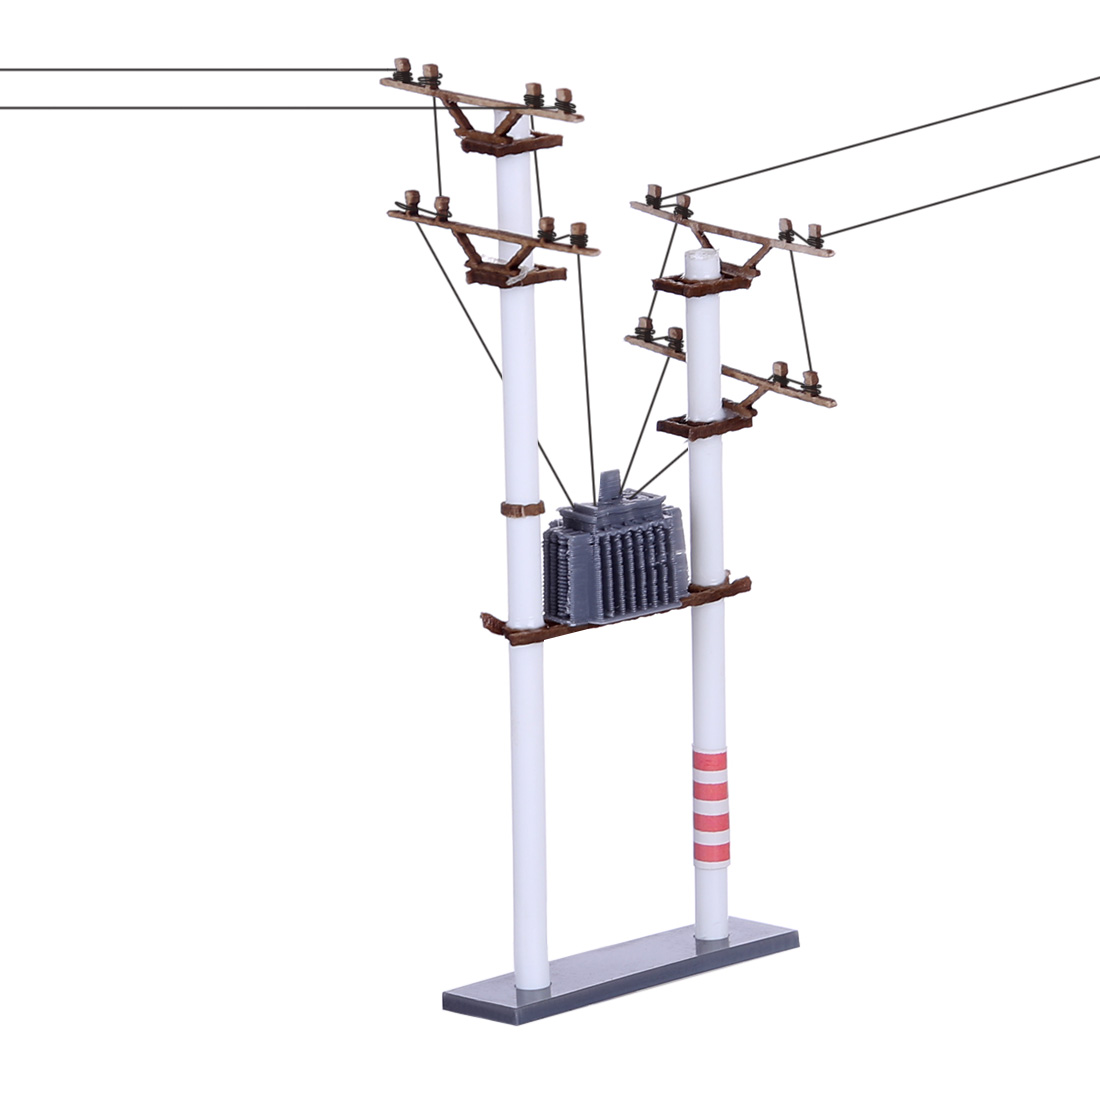 1:87 HO Scale S3A Transformer Telephone Pole Model For DIY Train Sand Table Model Accessories